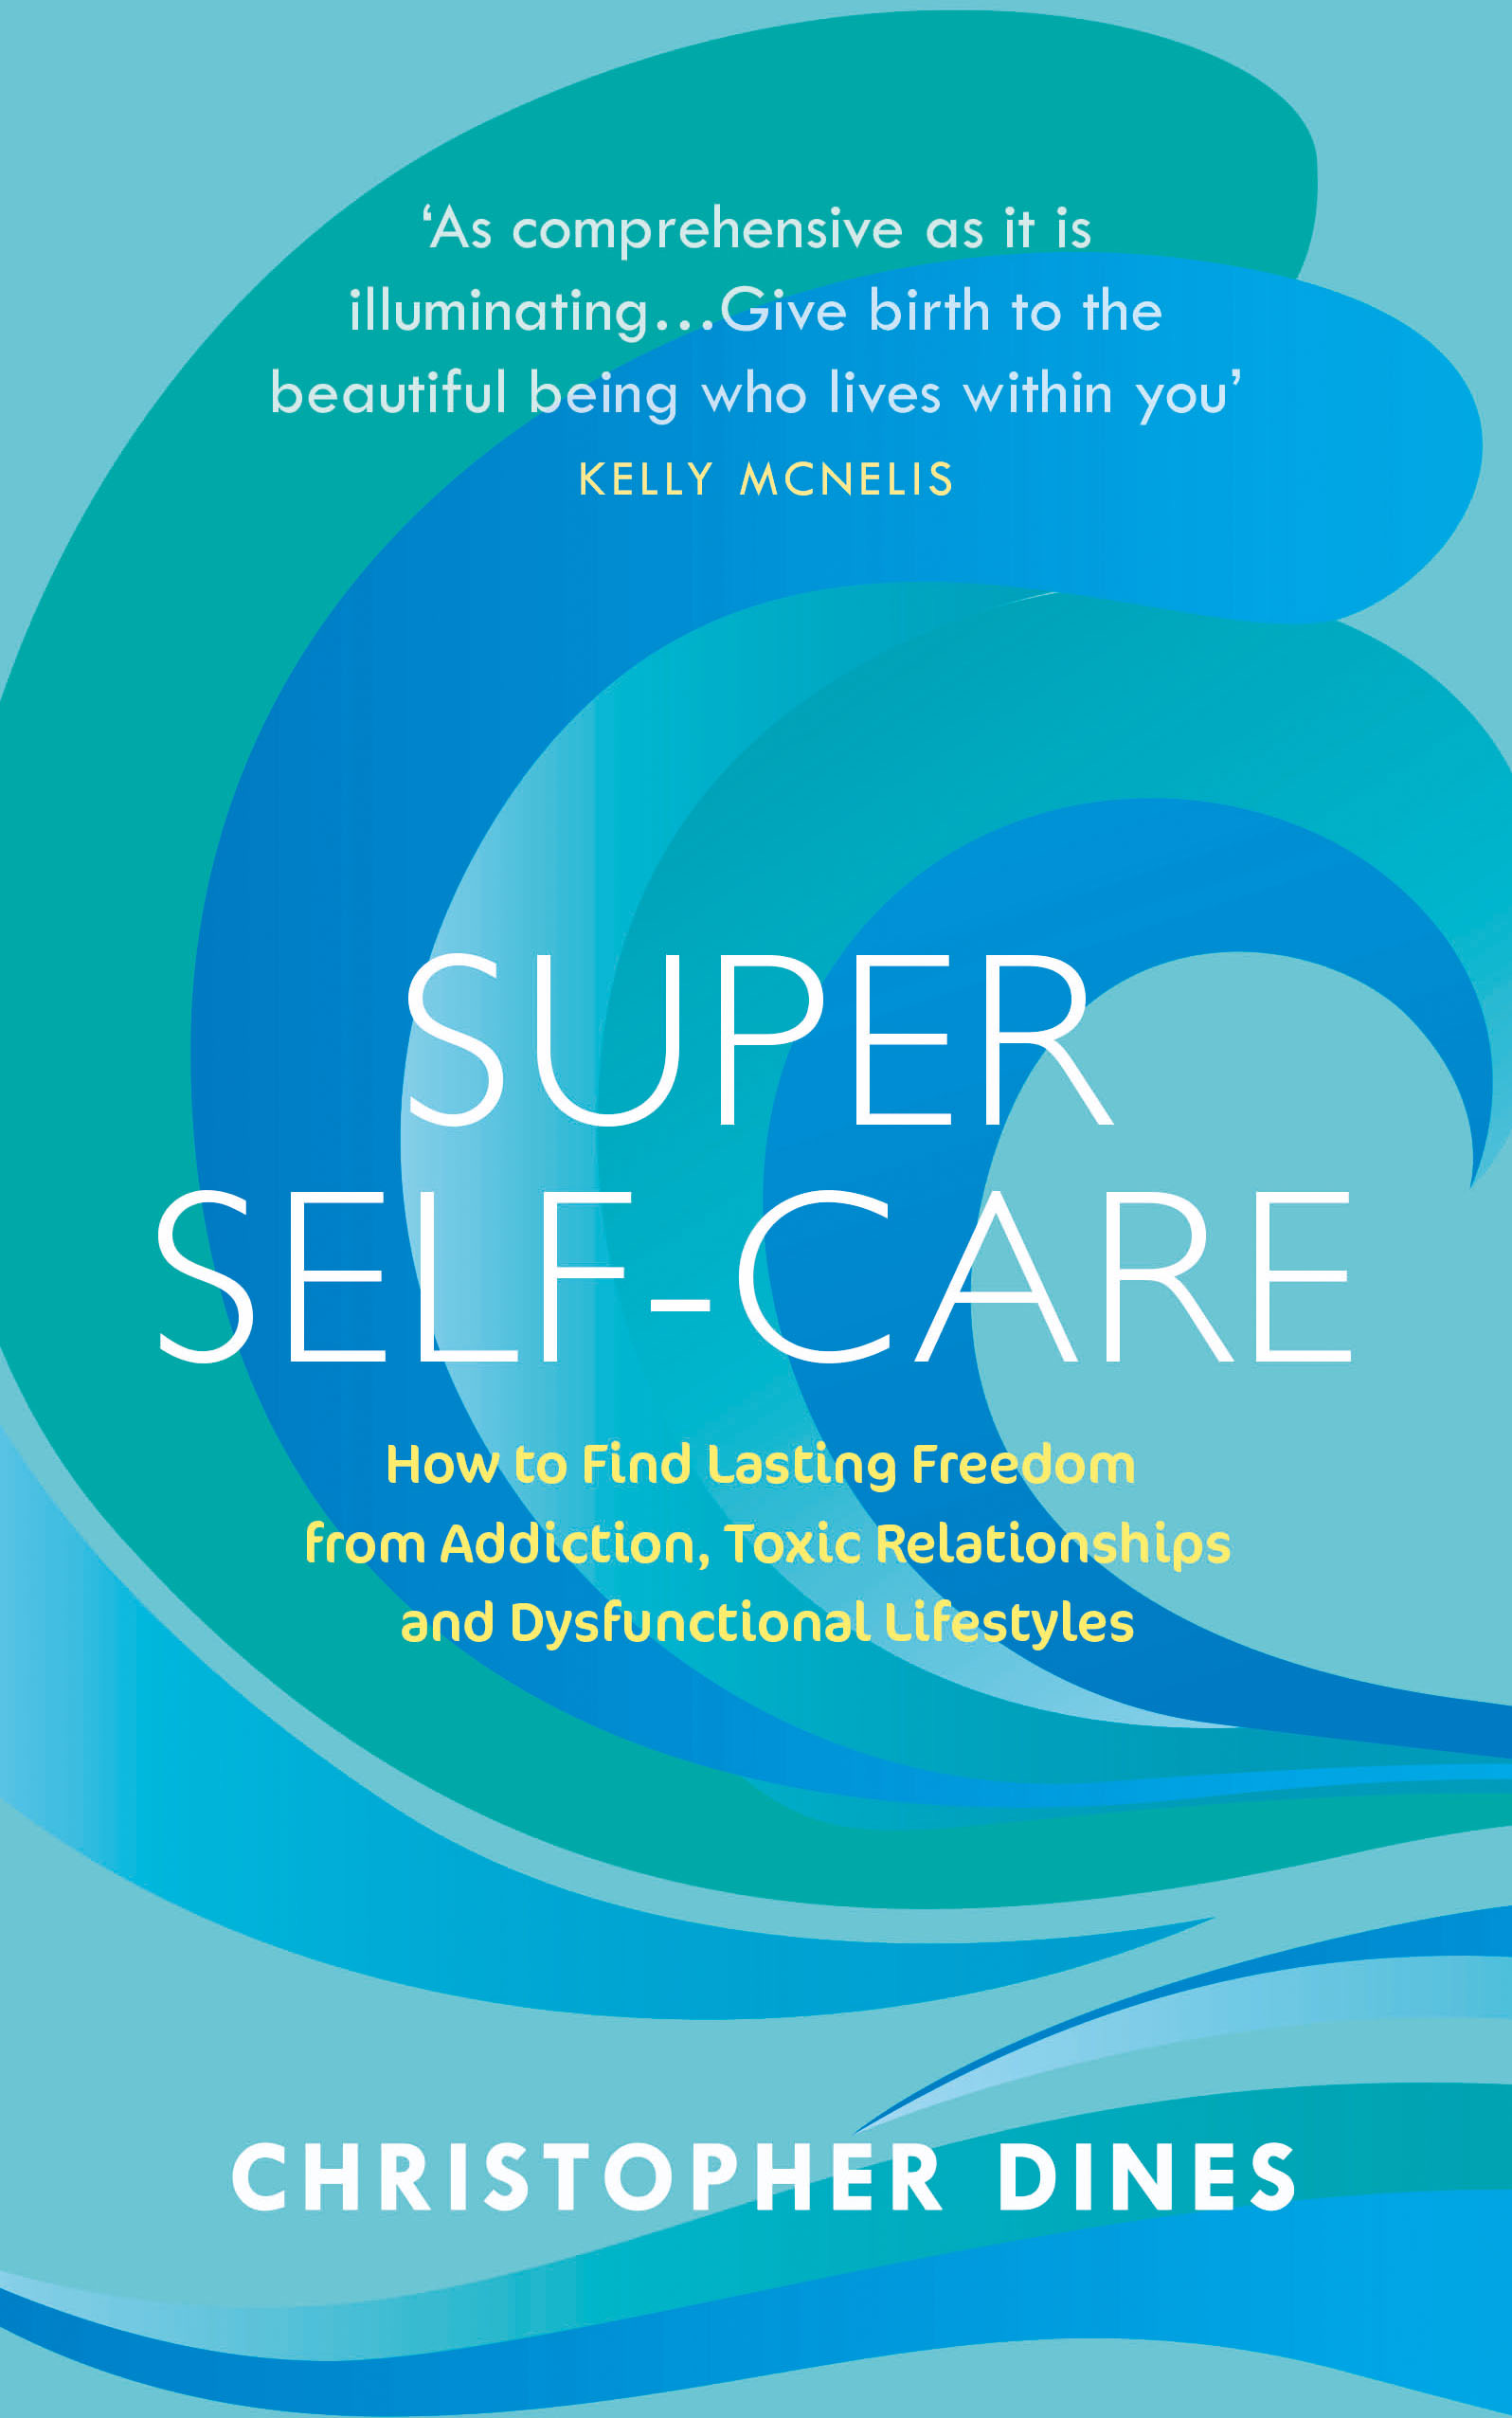 Super Self Care: How to Find Lasting Freedom from Addiction, Toxic Relationships and Dysfunctional Lifestyles